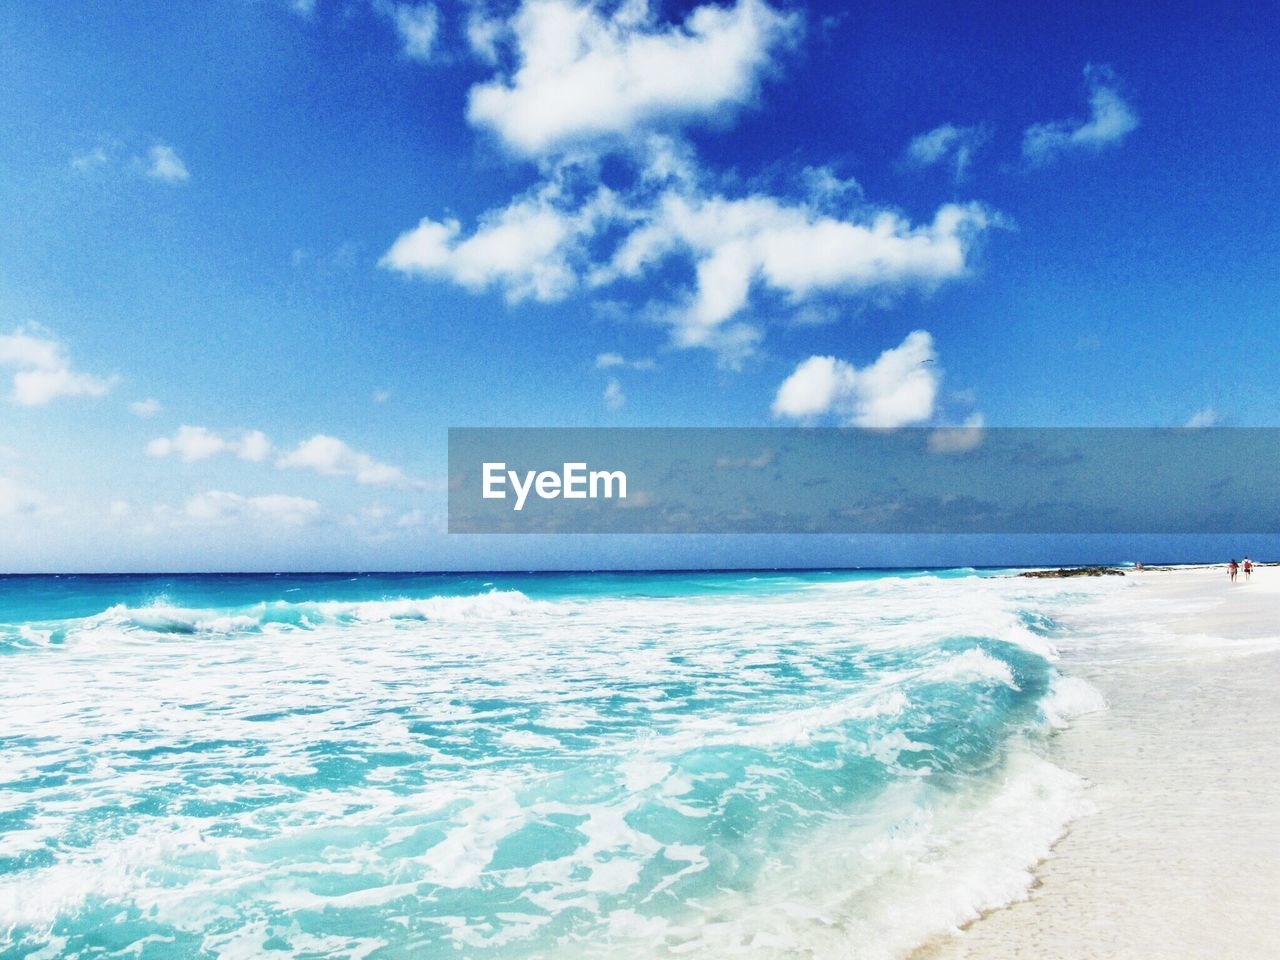 sea, beauty in nature, beach, horizon over water, wave, water, scenics, sky, nature, tranquility, no people, outdoors, day, blue